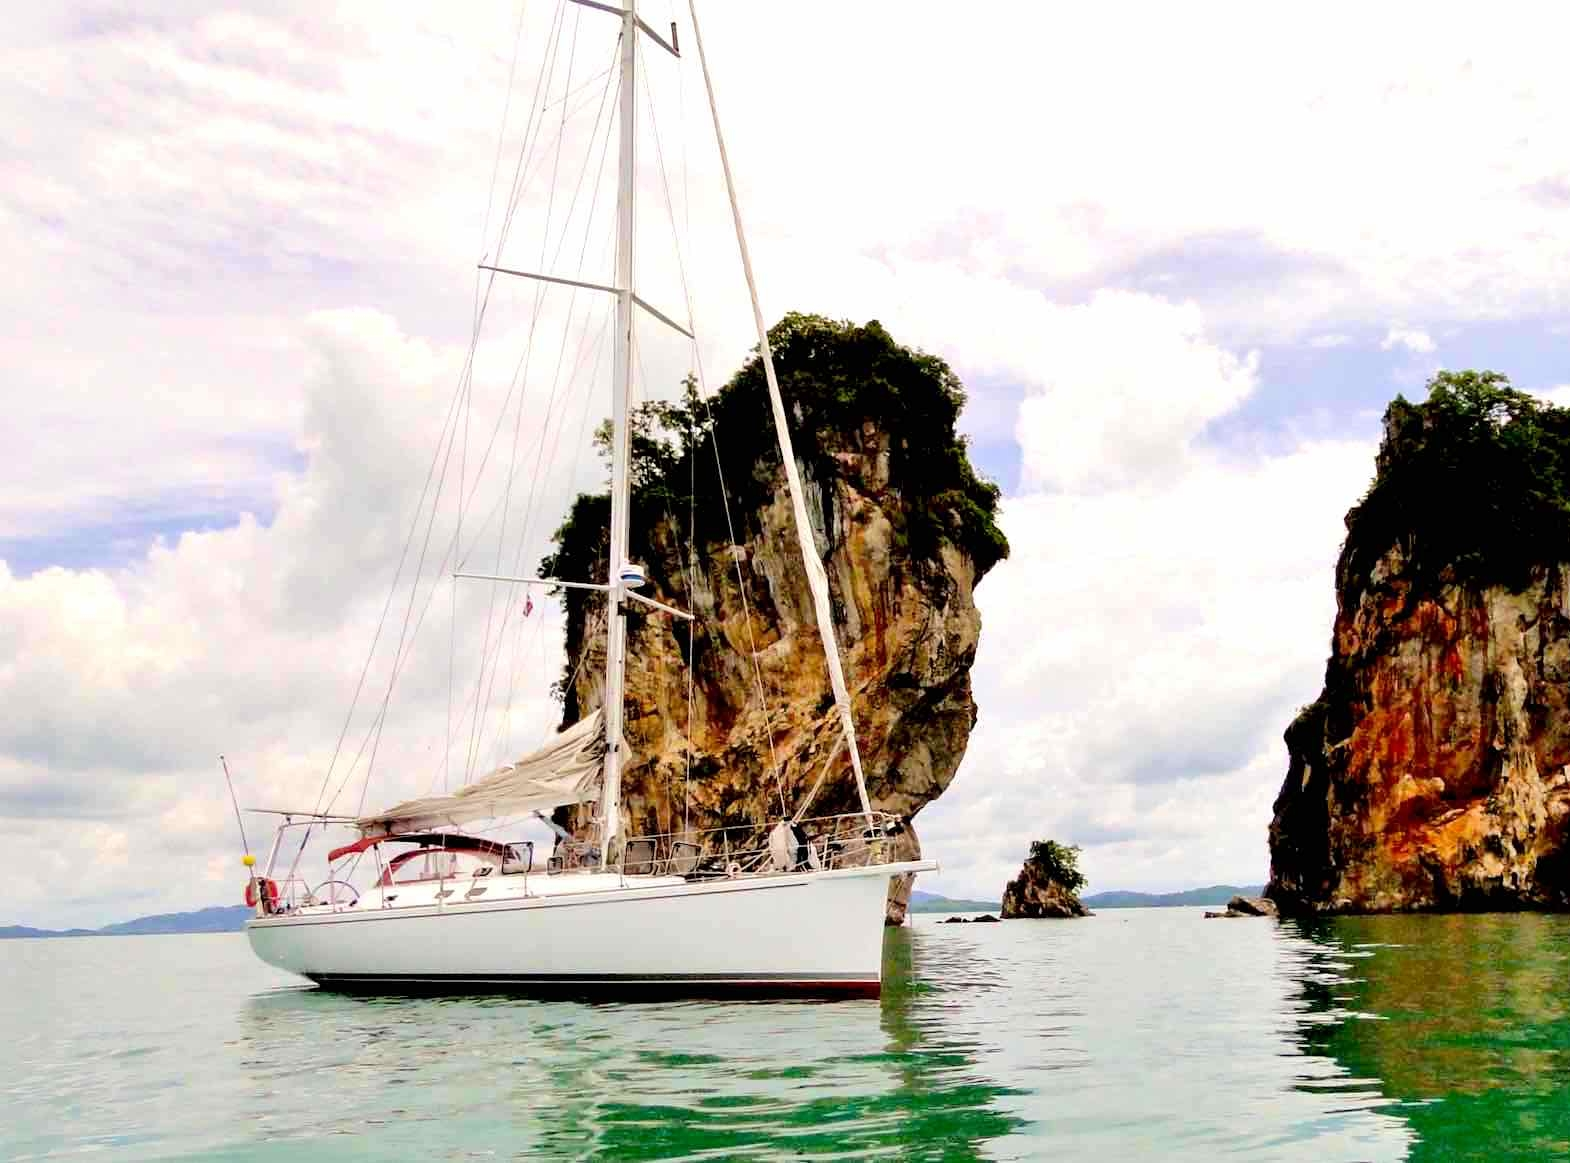 Dalai_anchoring by karst islands in untouched world of Mergui_XS.jpeg